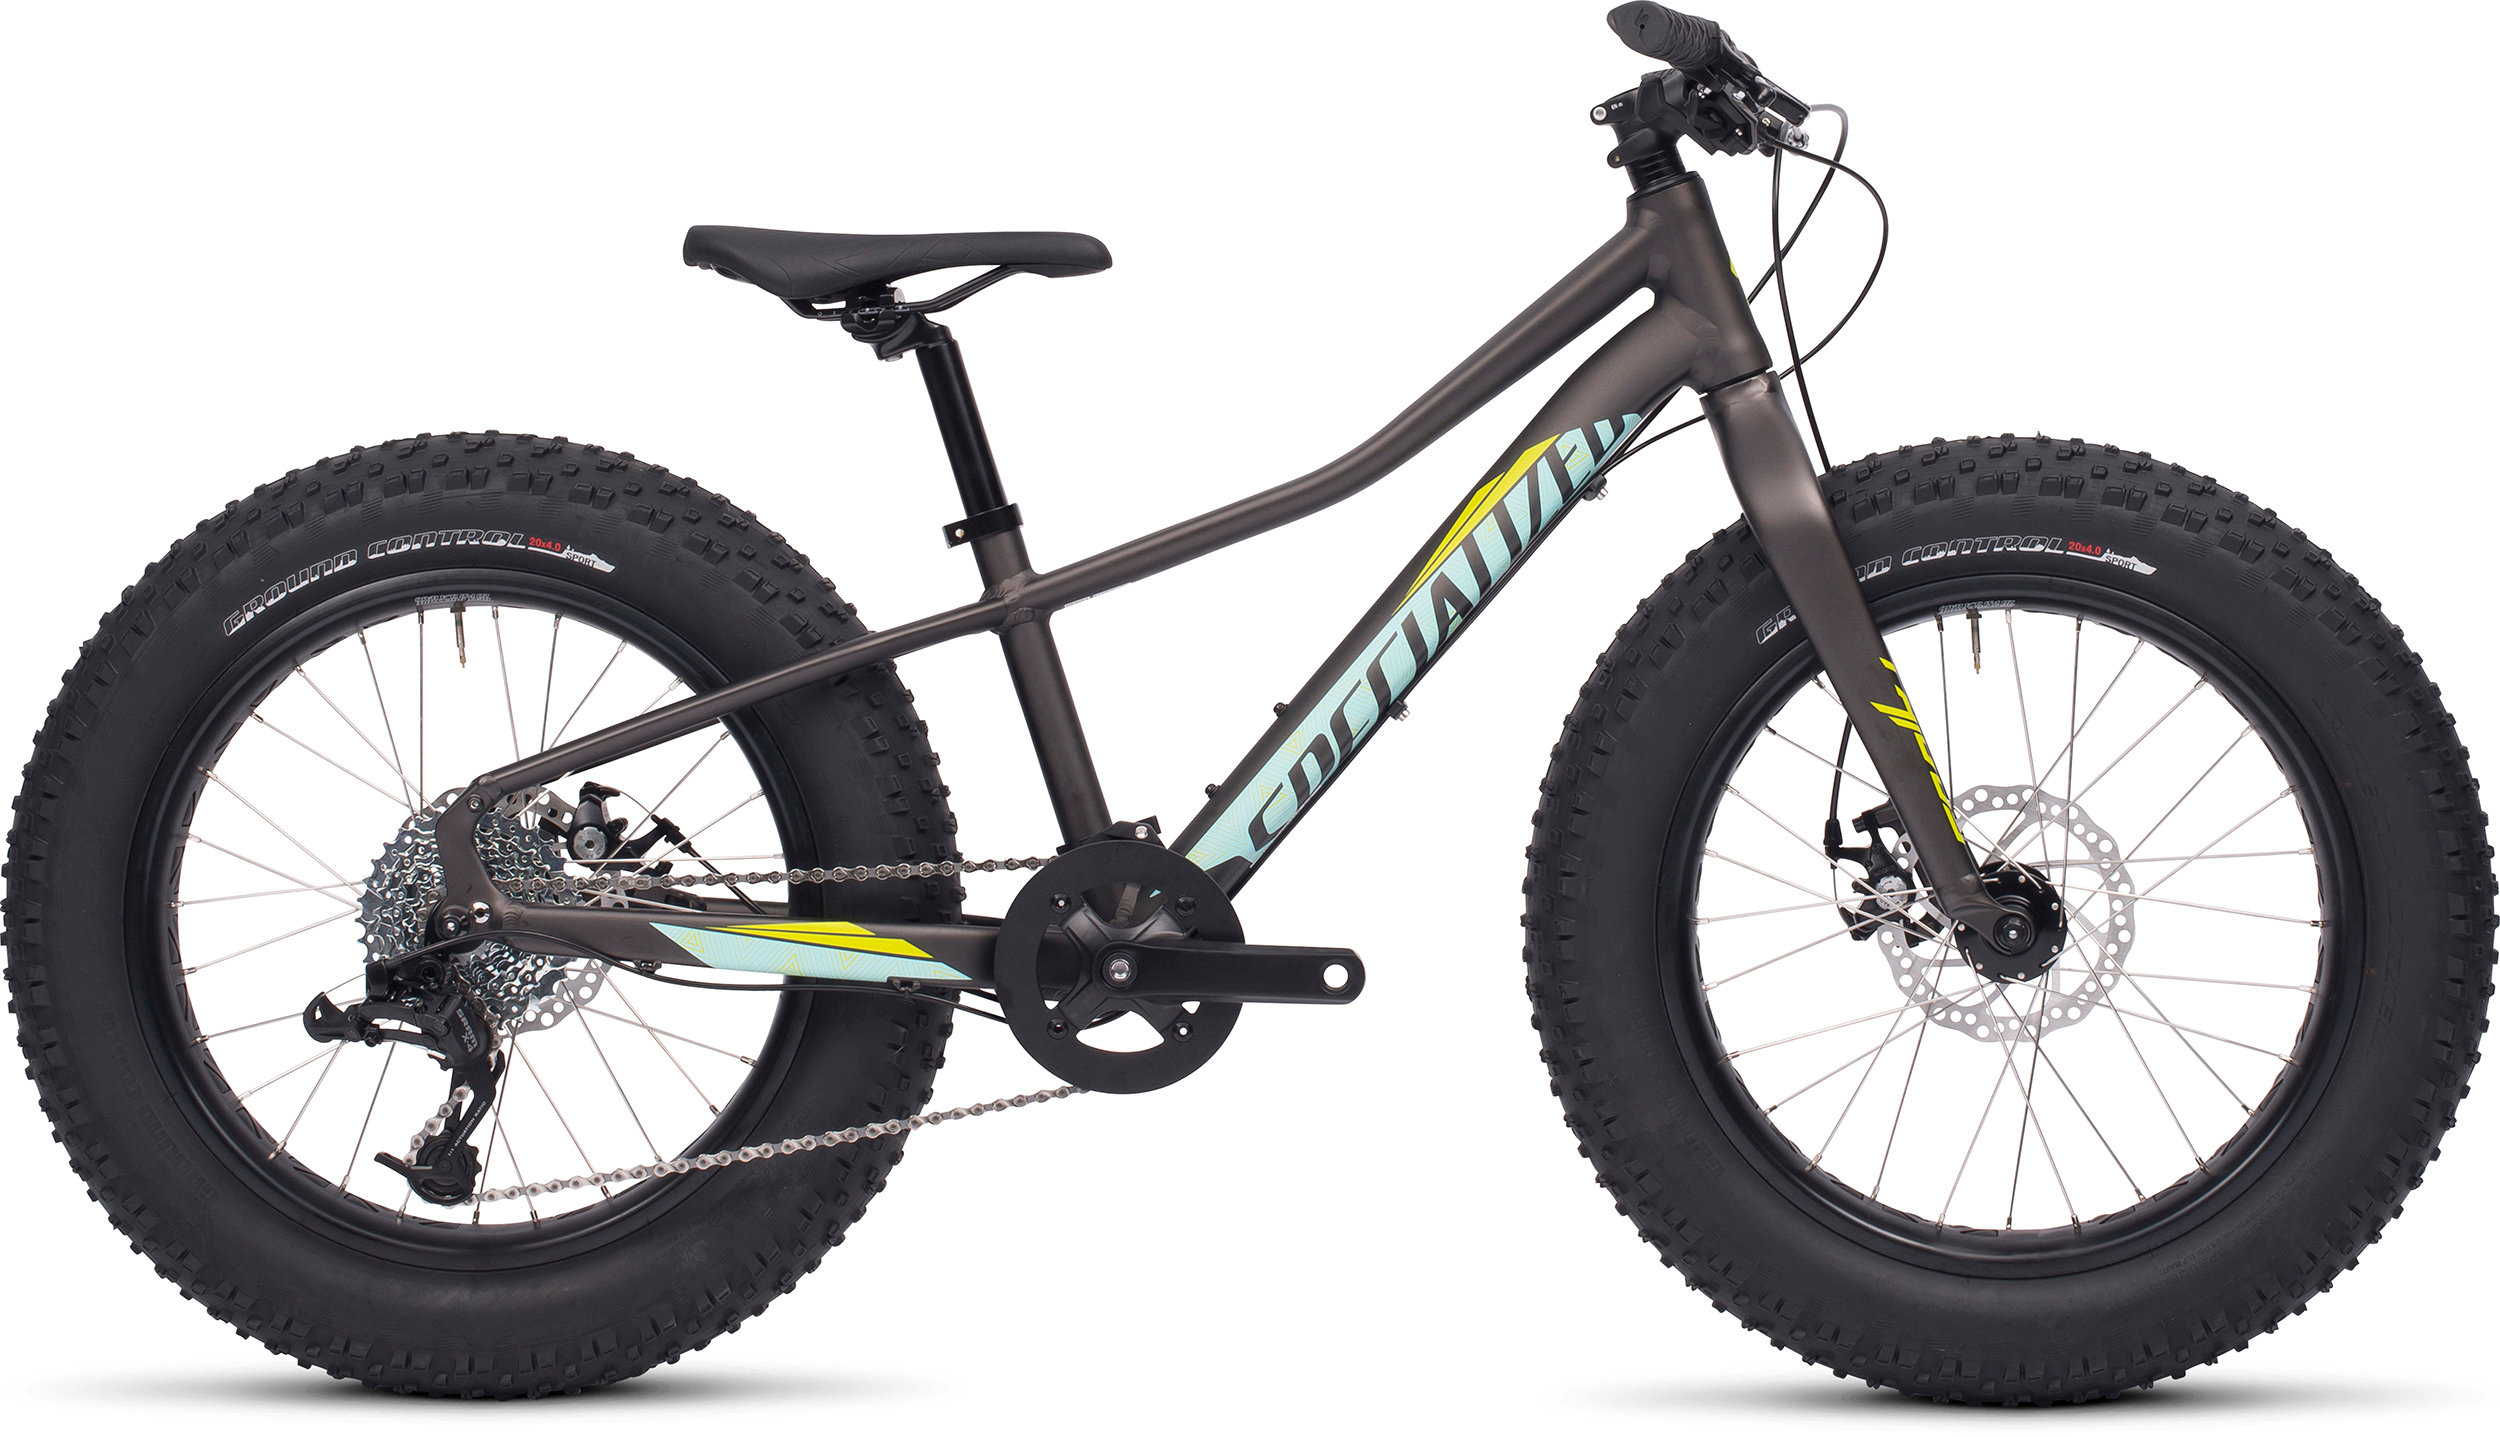 SPECIALIZED FATBOY 20 CHAR/TEAL/HYP GRN 11 - Bike Zone